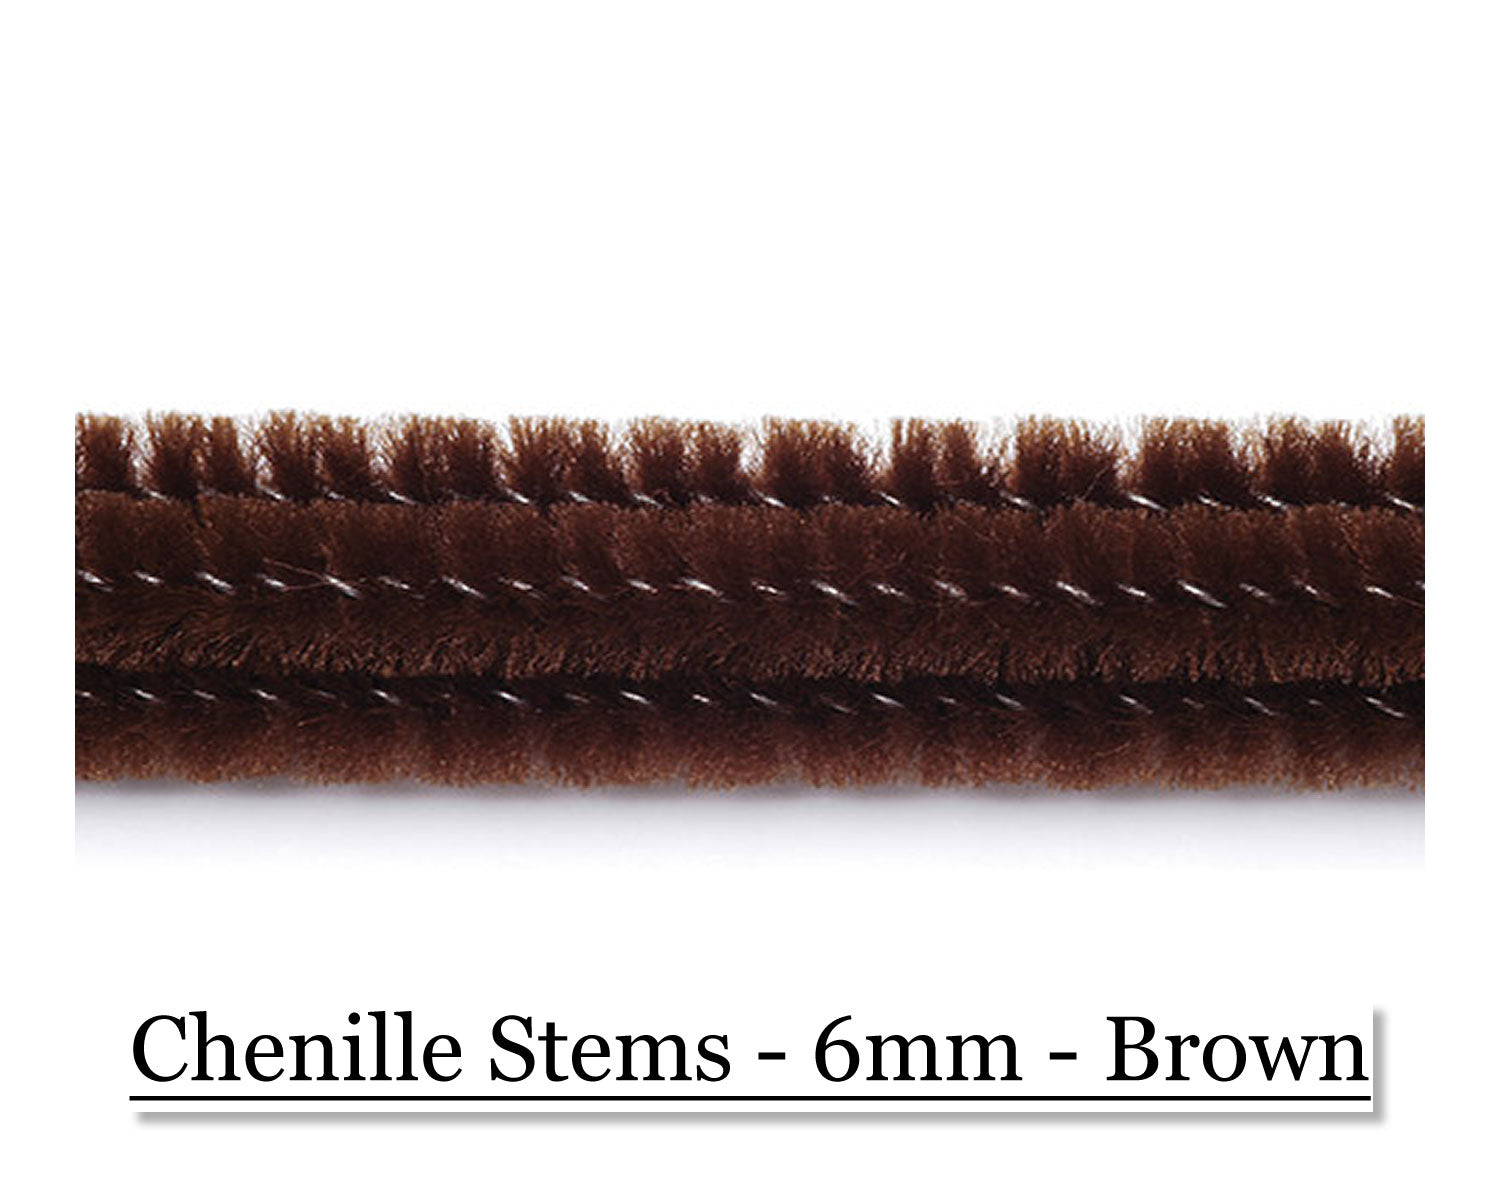 Chenille Stems - 6mm - Brown